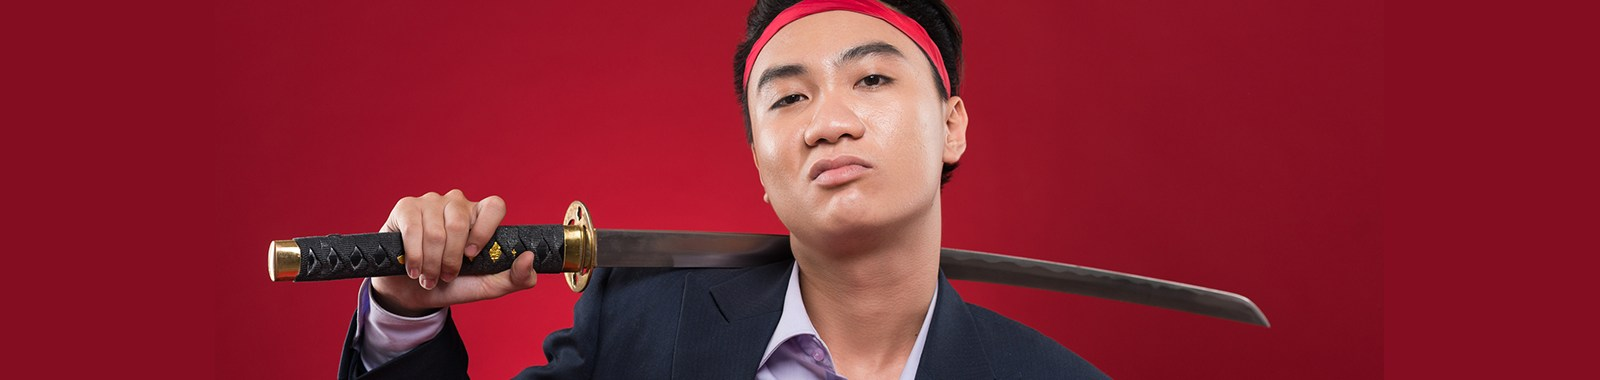 Portrait of confident Vietnamese manager with katana over his shoulder